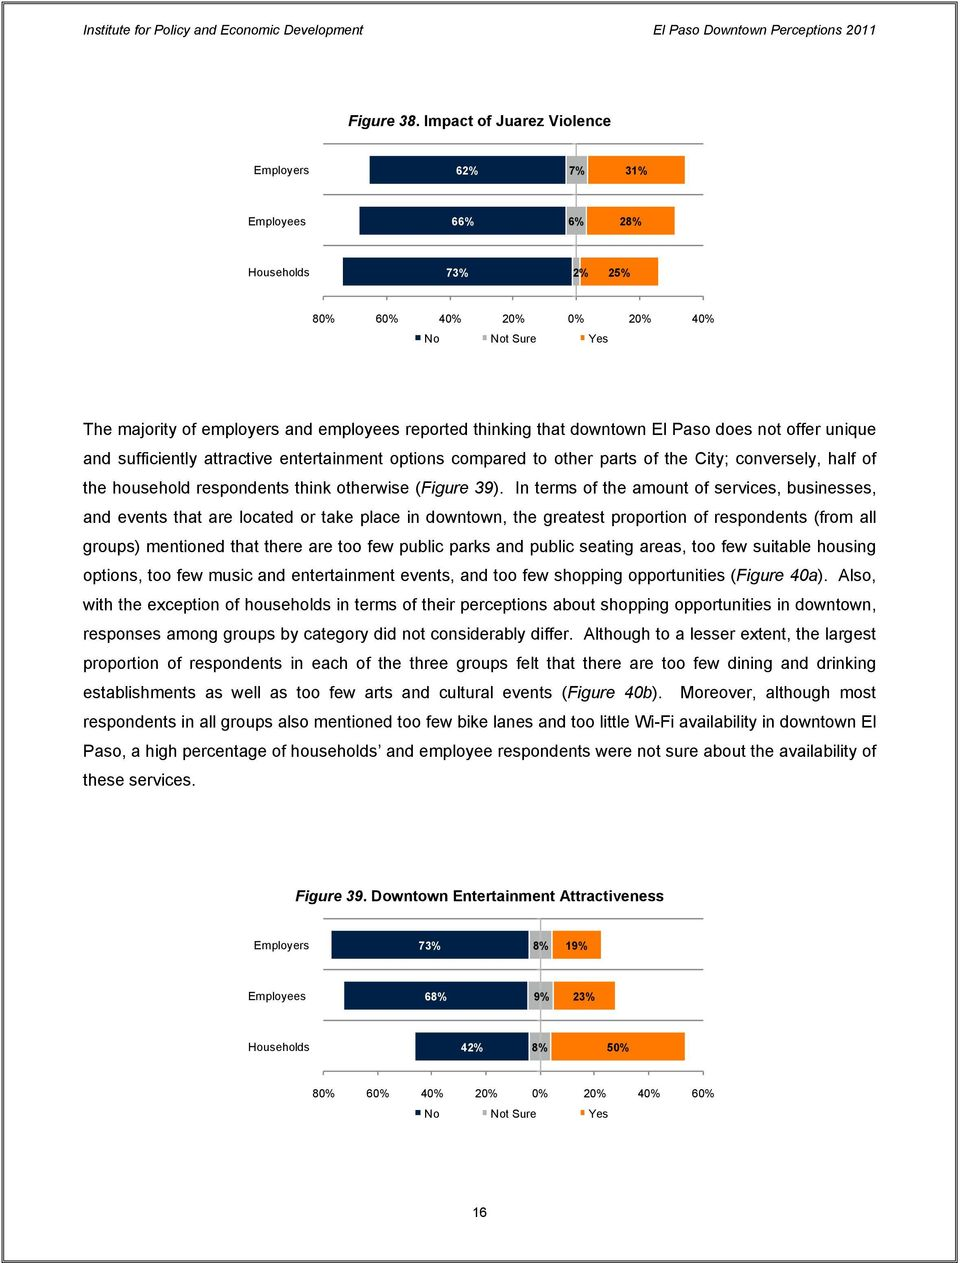 downtown El Paso does not offer unique and sufficiently attractive entertainment options compared to other parts of the City; conversely, half of the household respondents think otherwise (Figure 39).